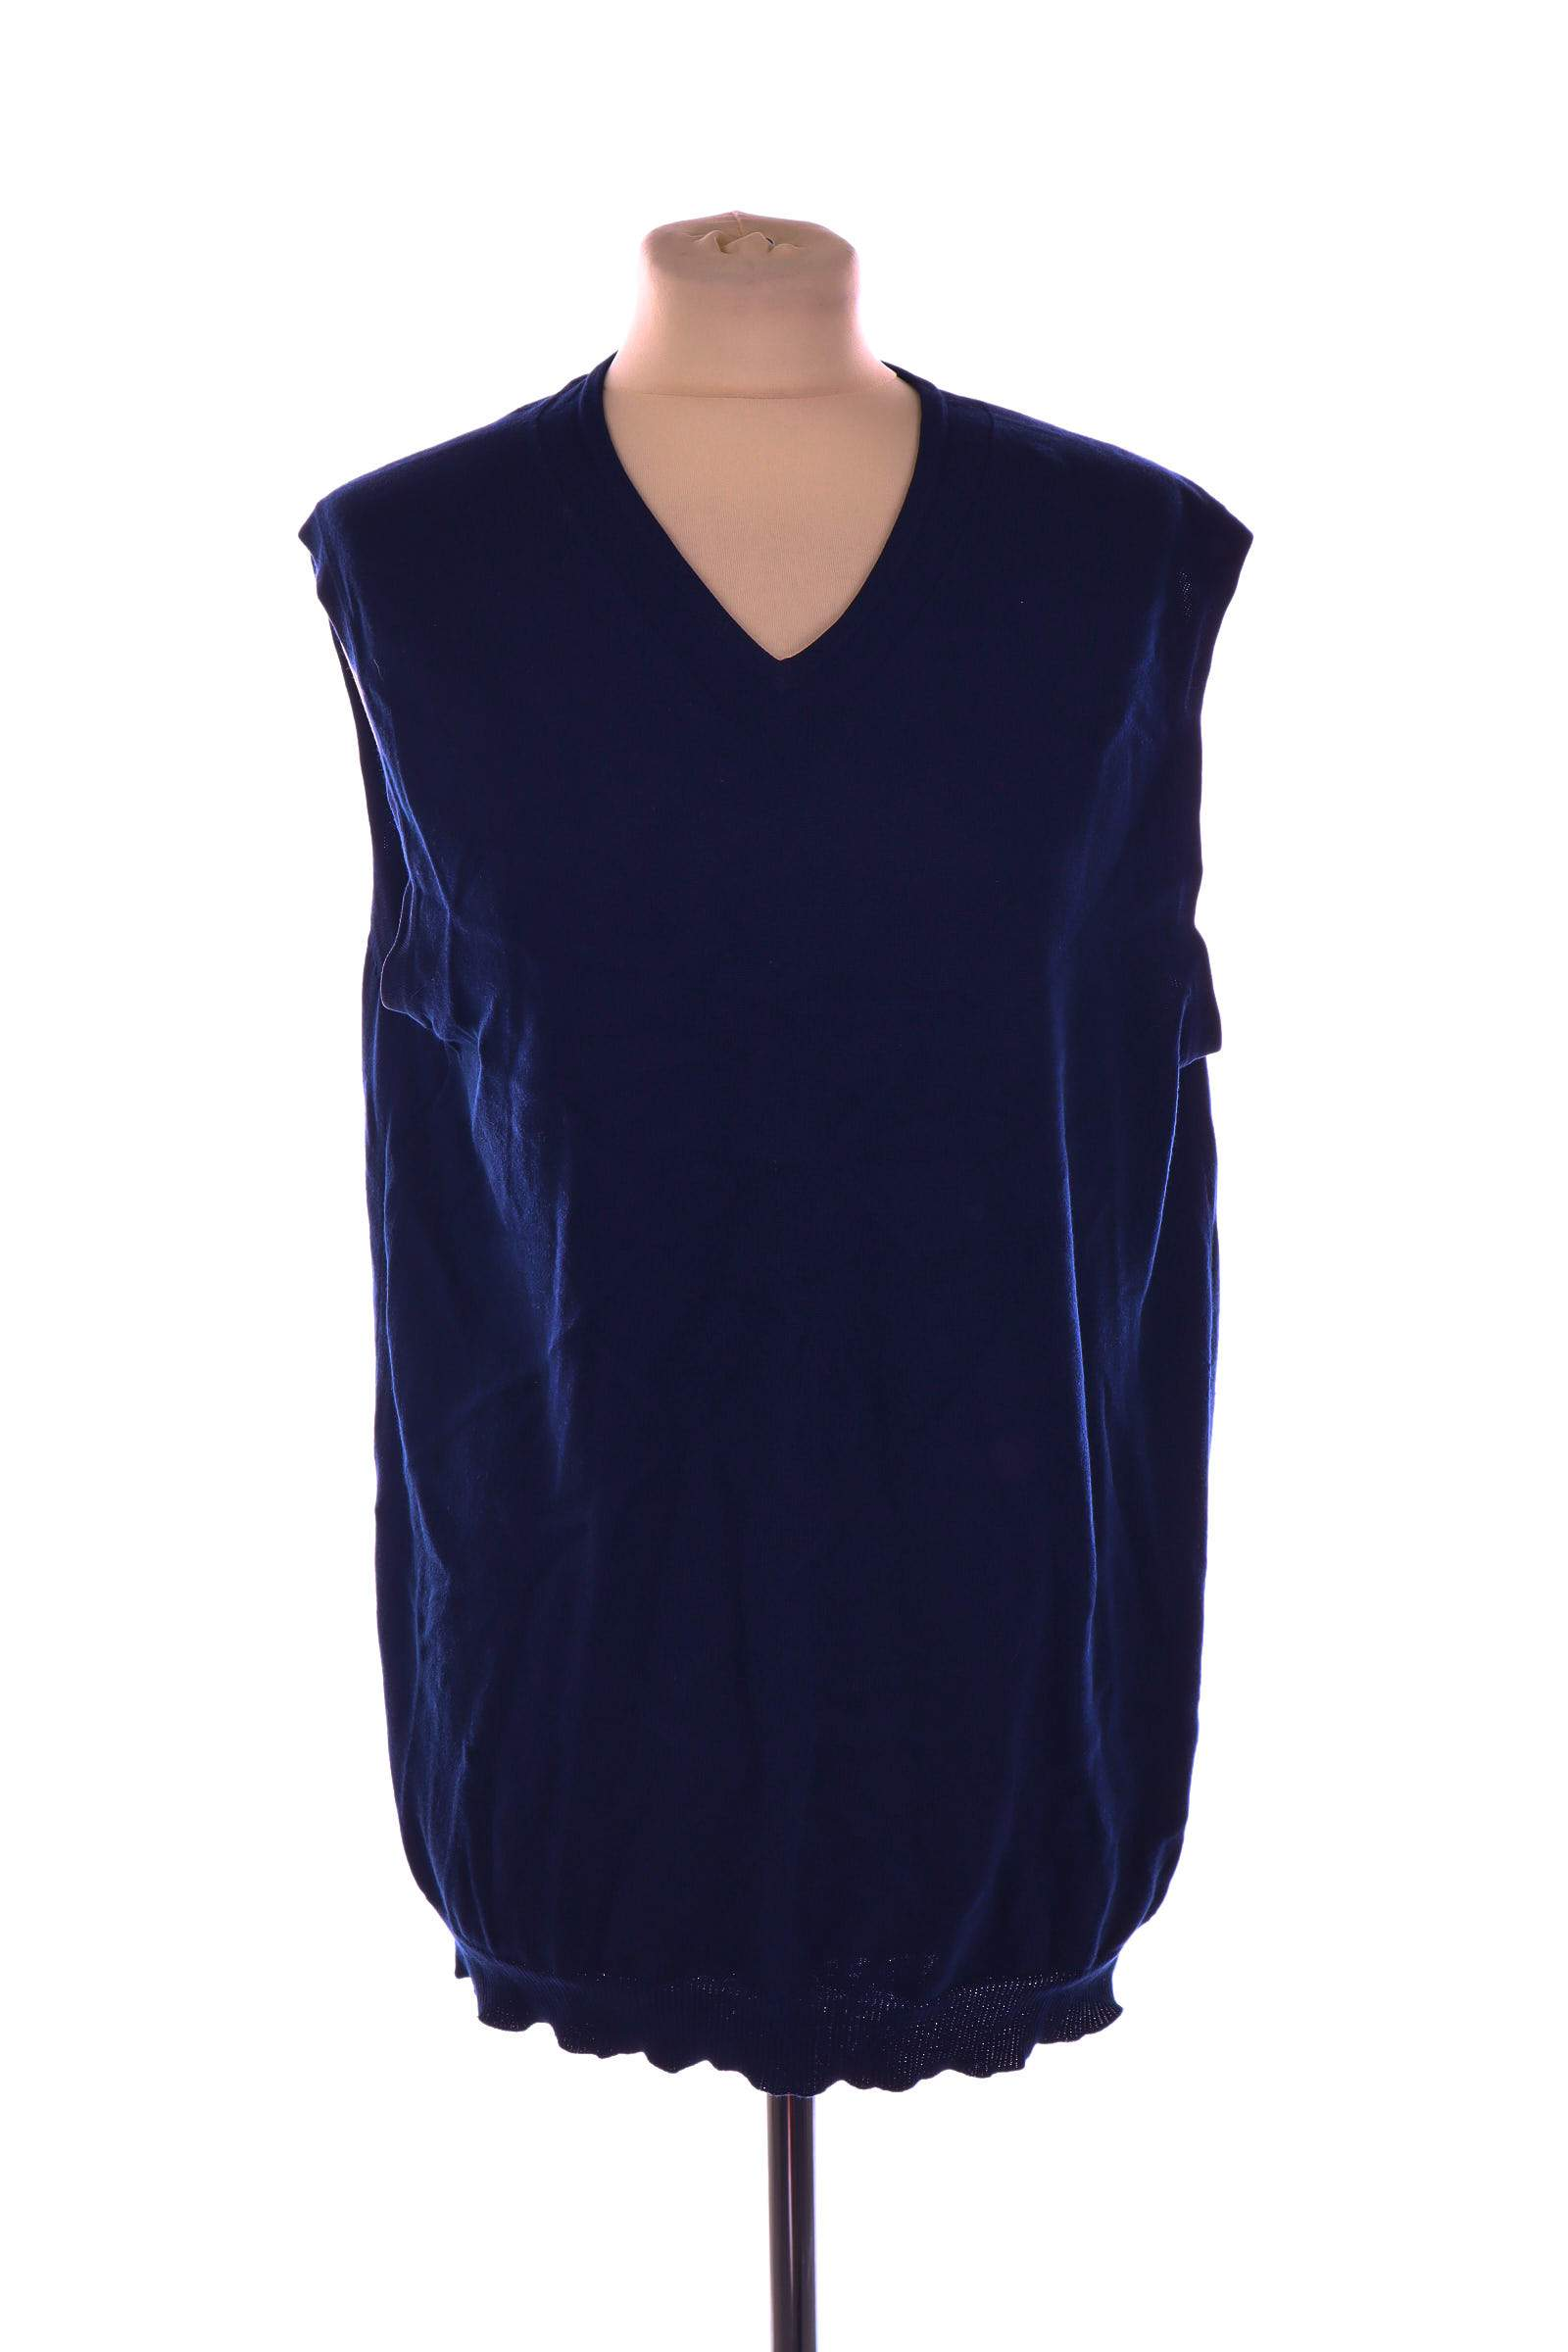 Reserved Blue Top